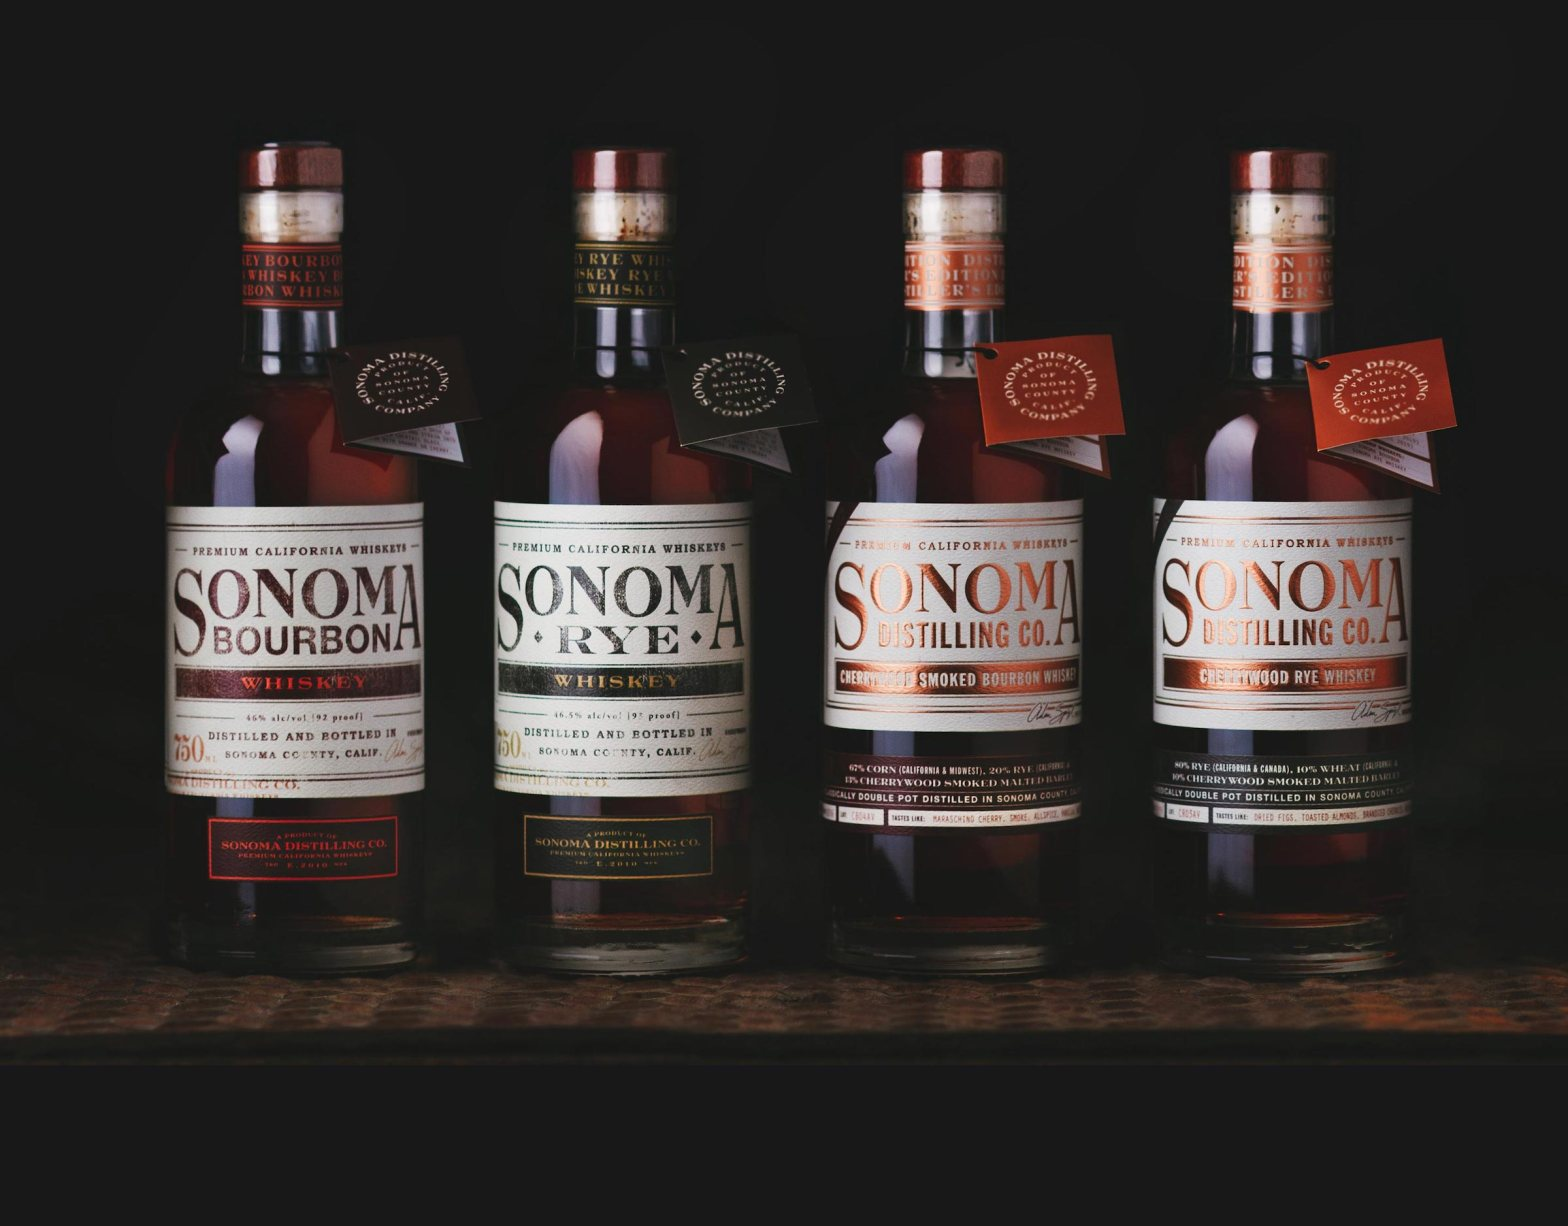 Thumbnail for Drink Up With Sonoma Distilling Company's Premium California Whiskey